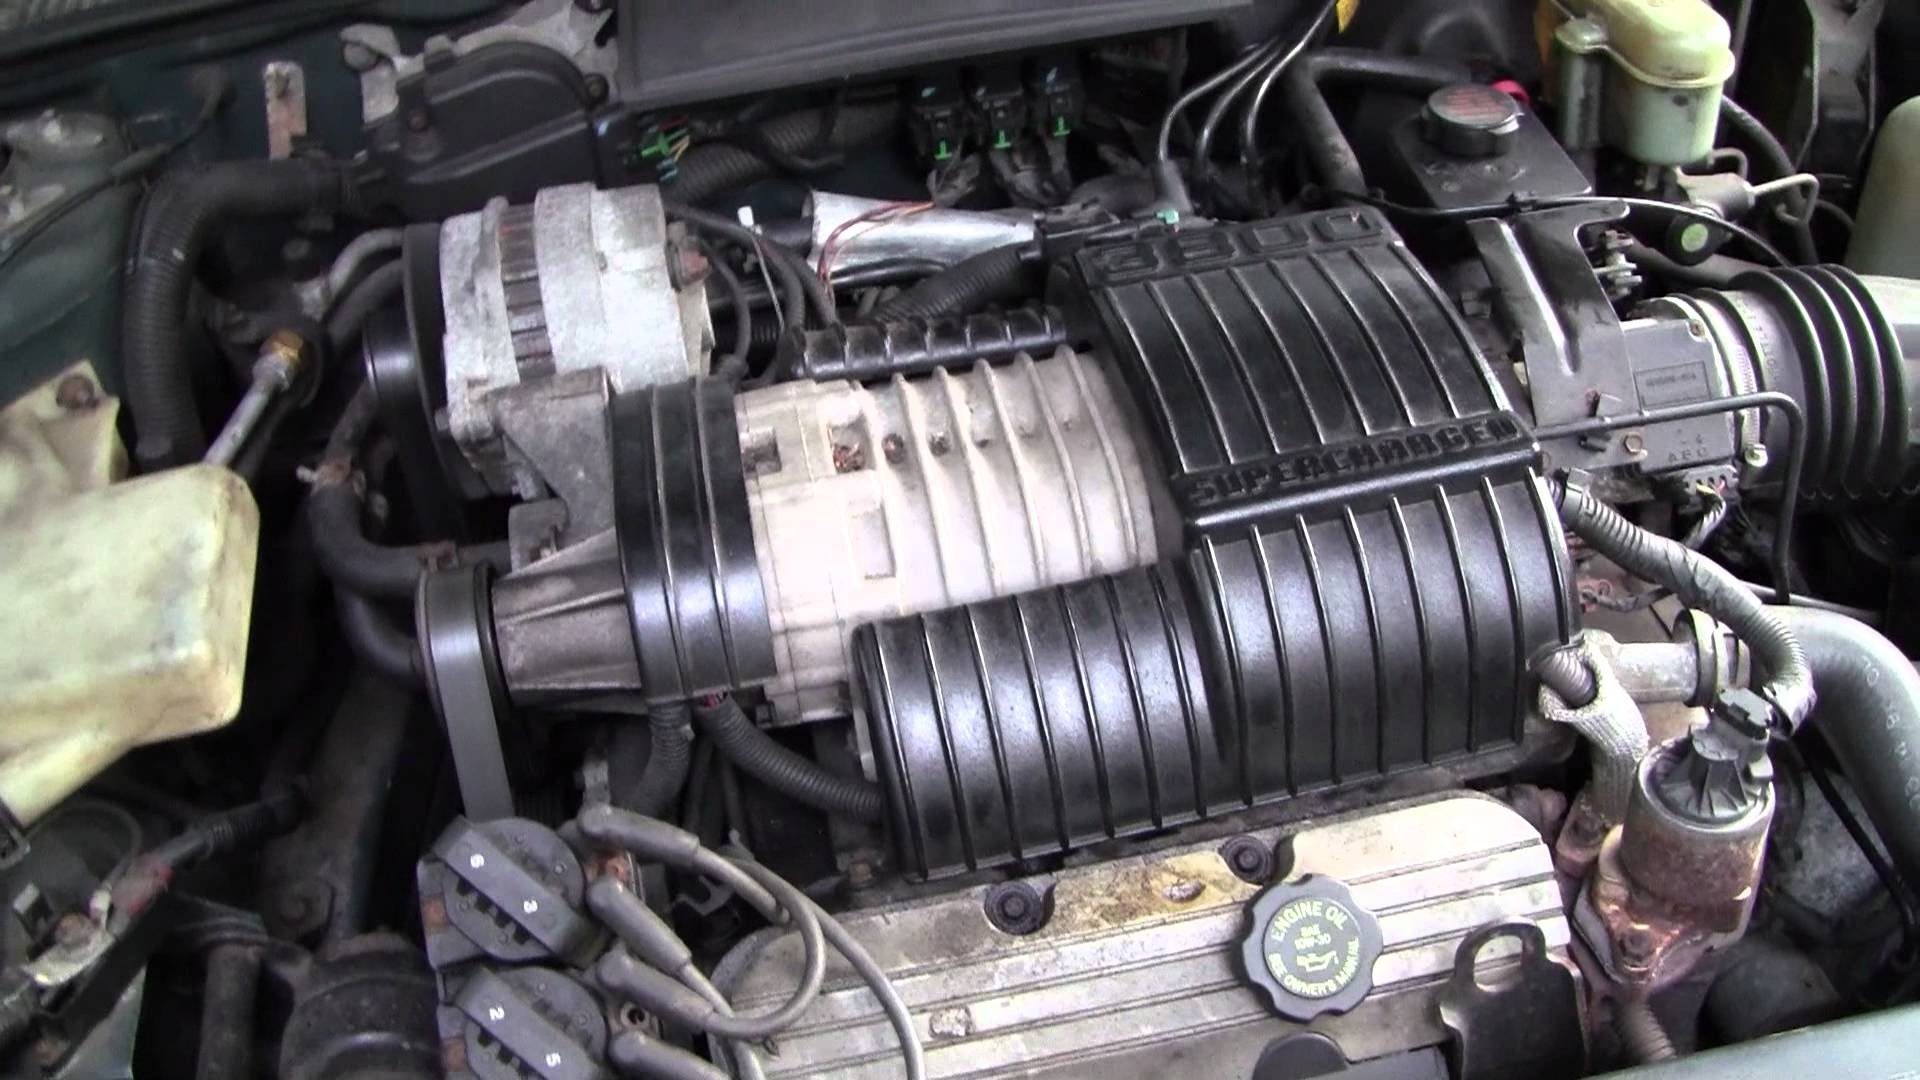 Gm 3800 V6 Engine Diagram My Wiring Bus How To Find A Vac Leak On Series I Supercharged